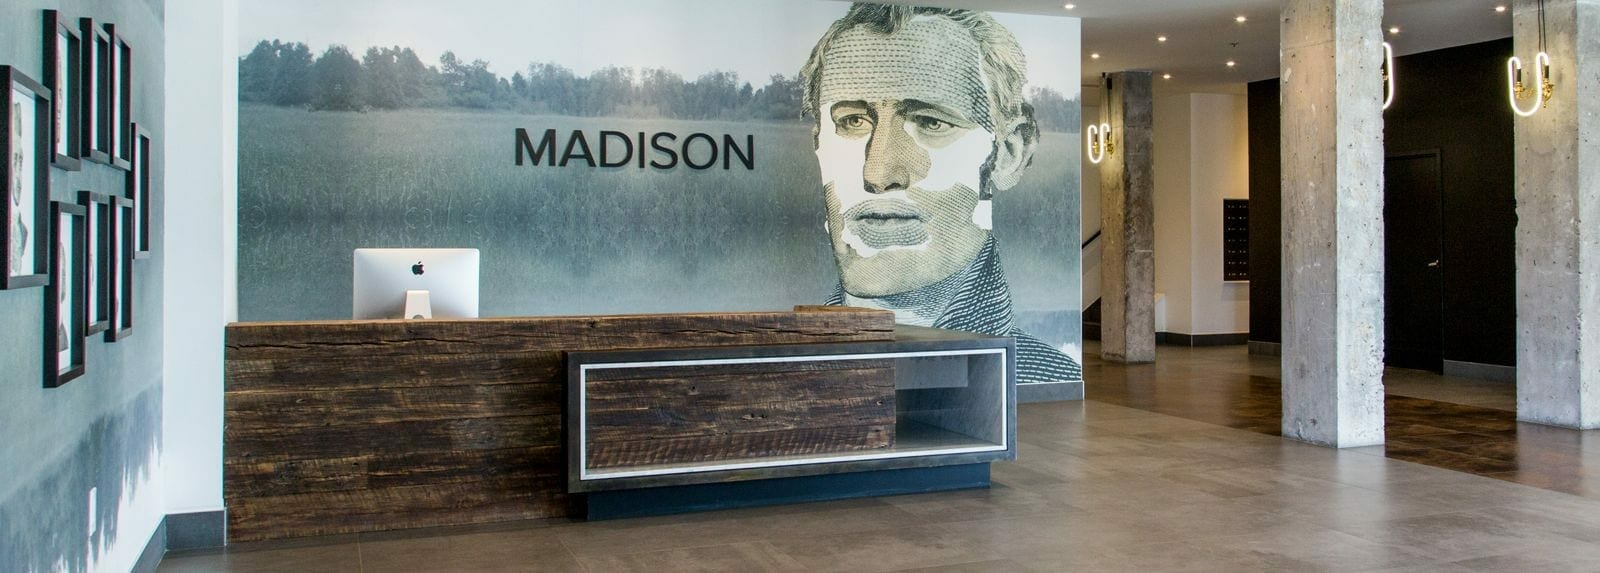 presidential city madison reception desk hero